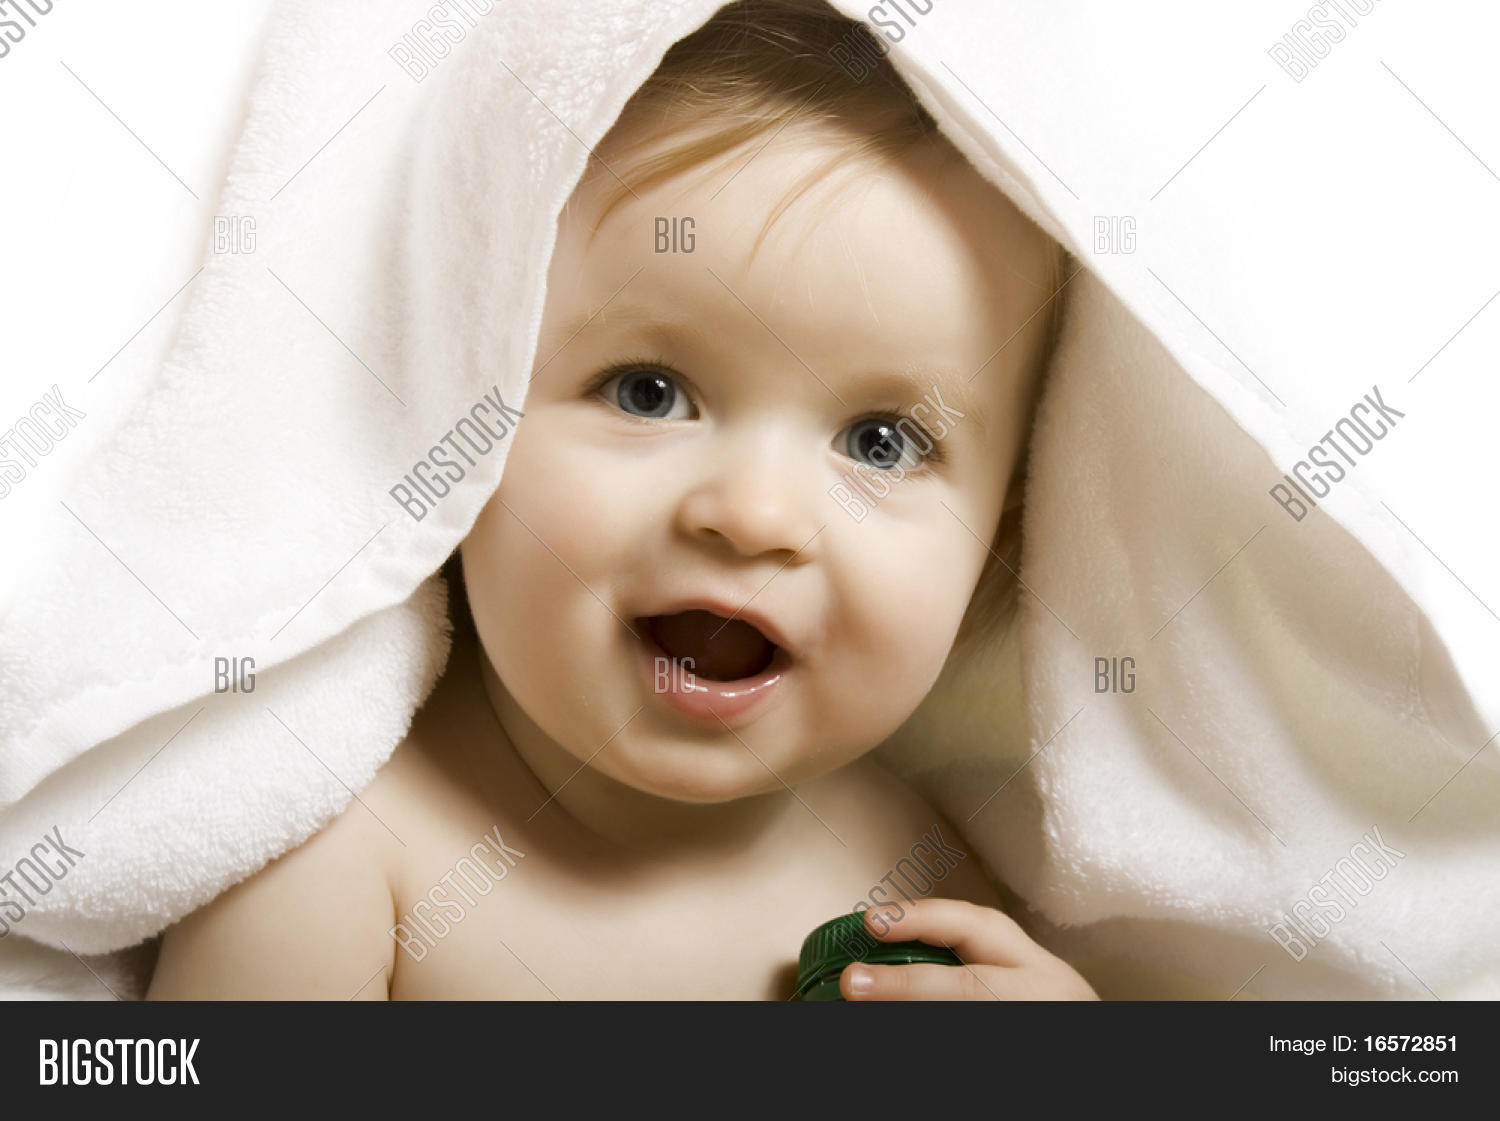 Baby After Bath. Image & Photo (Free Trial) | Bigstock